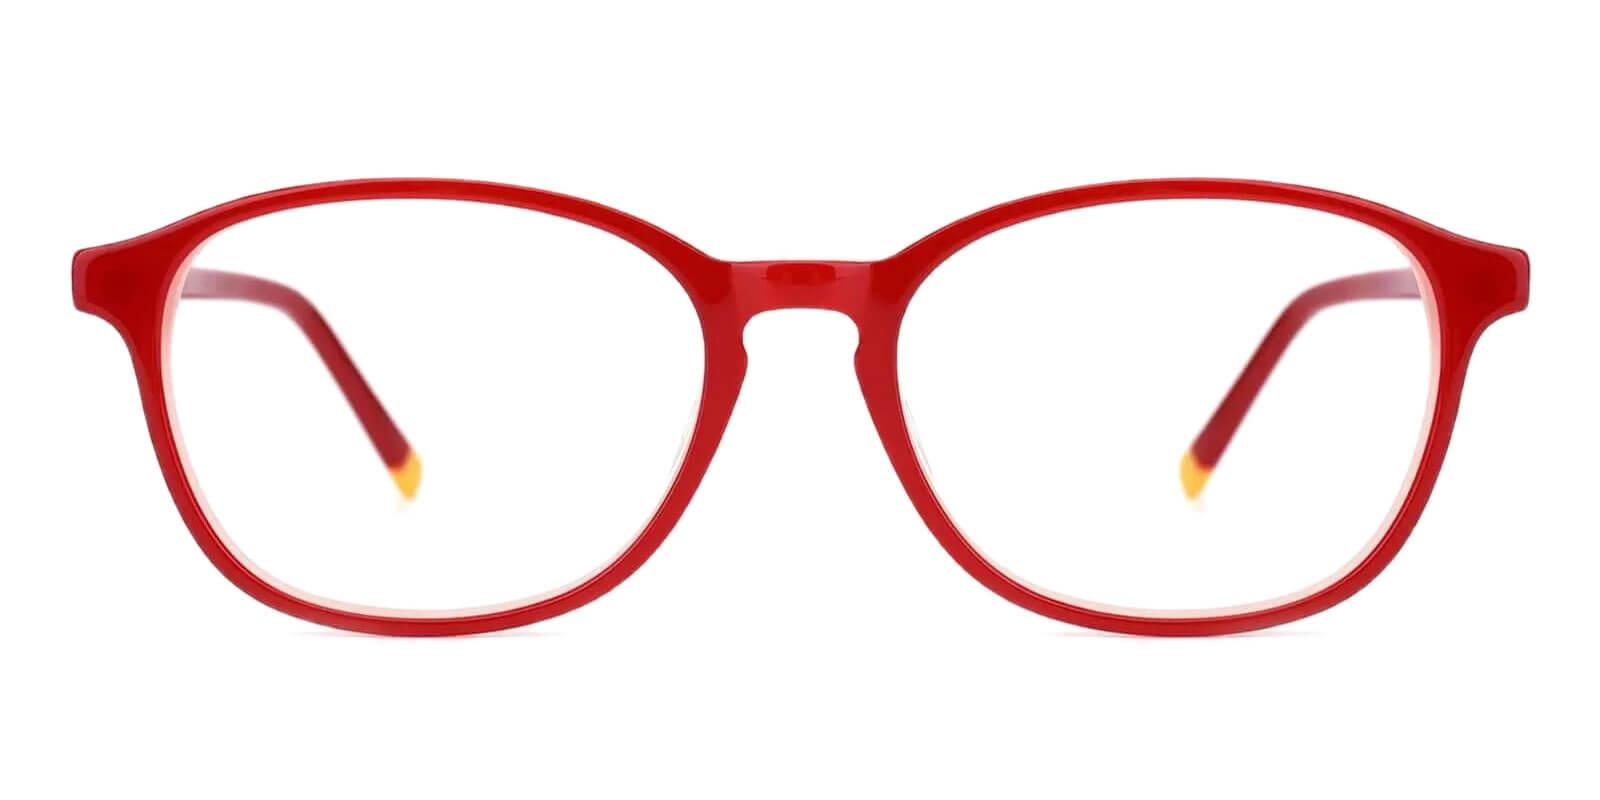 Fogelsville Red Acetate Eyeglasses , SpringHinges , UniversalBridgeFit Frames from ABBE Glasses